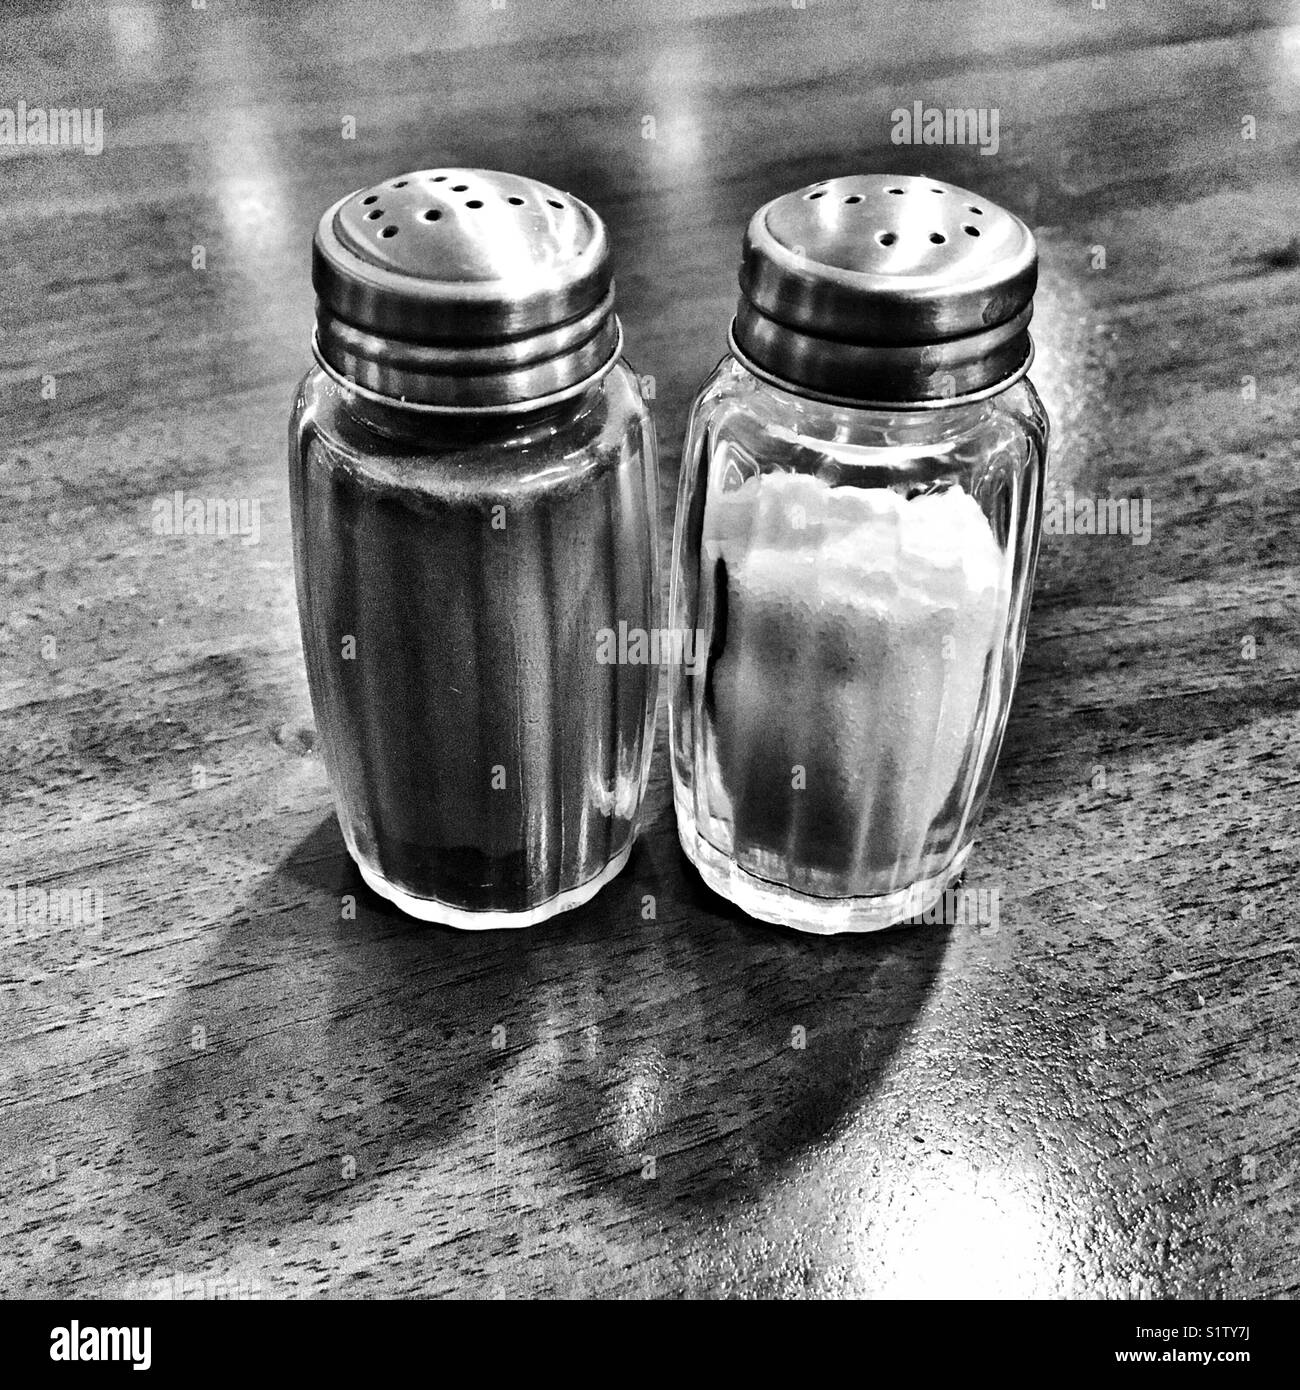 Salt And Pepper Shakers High Resolution Stock Photography And Images Alamy